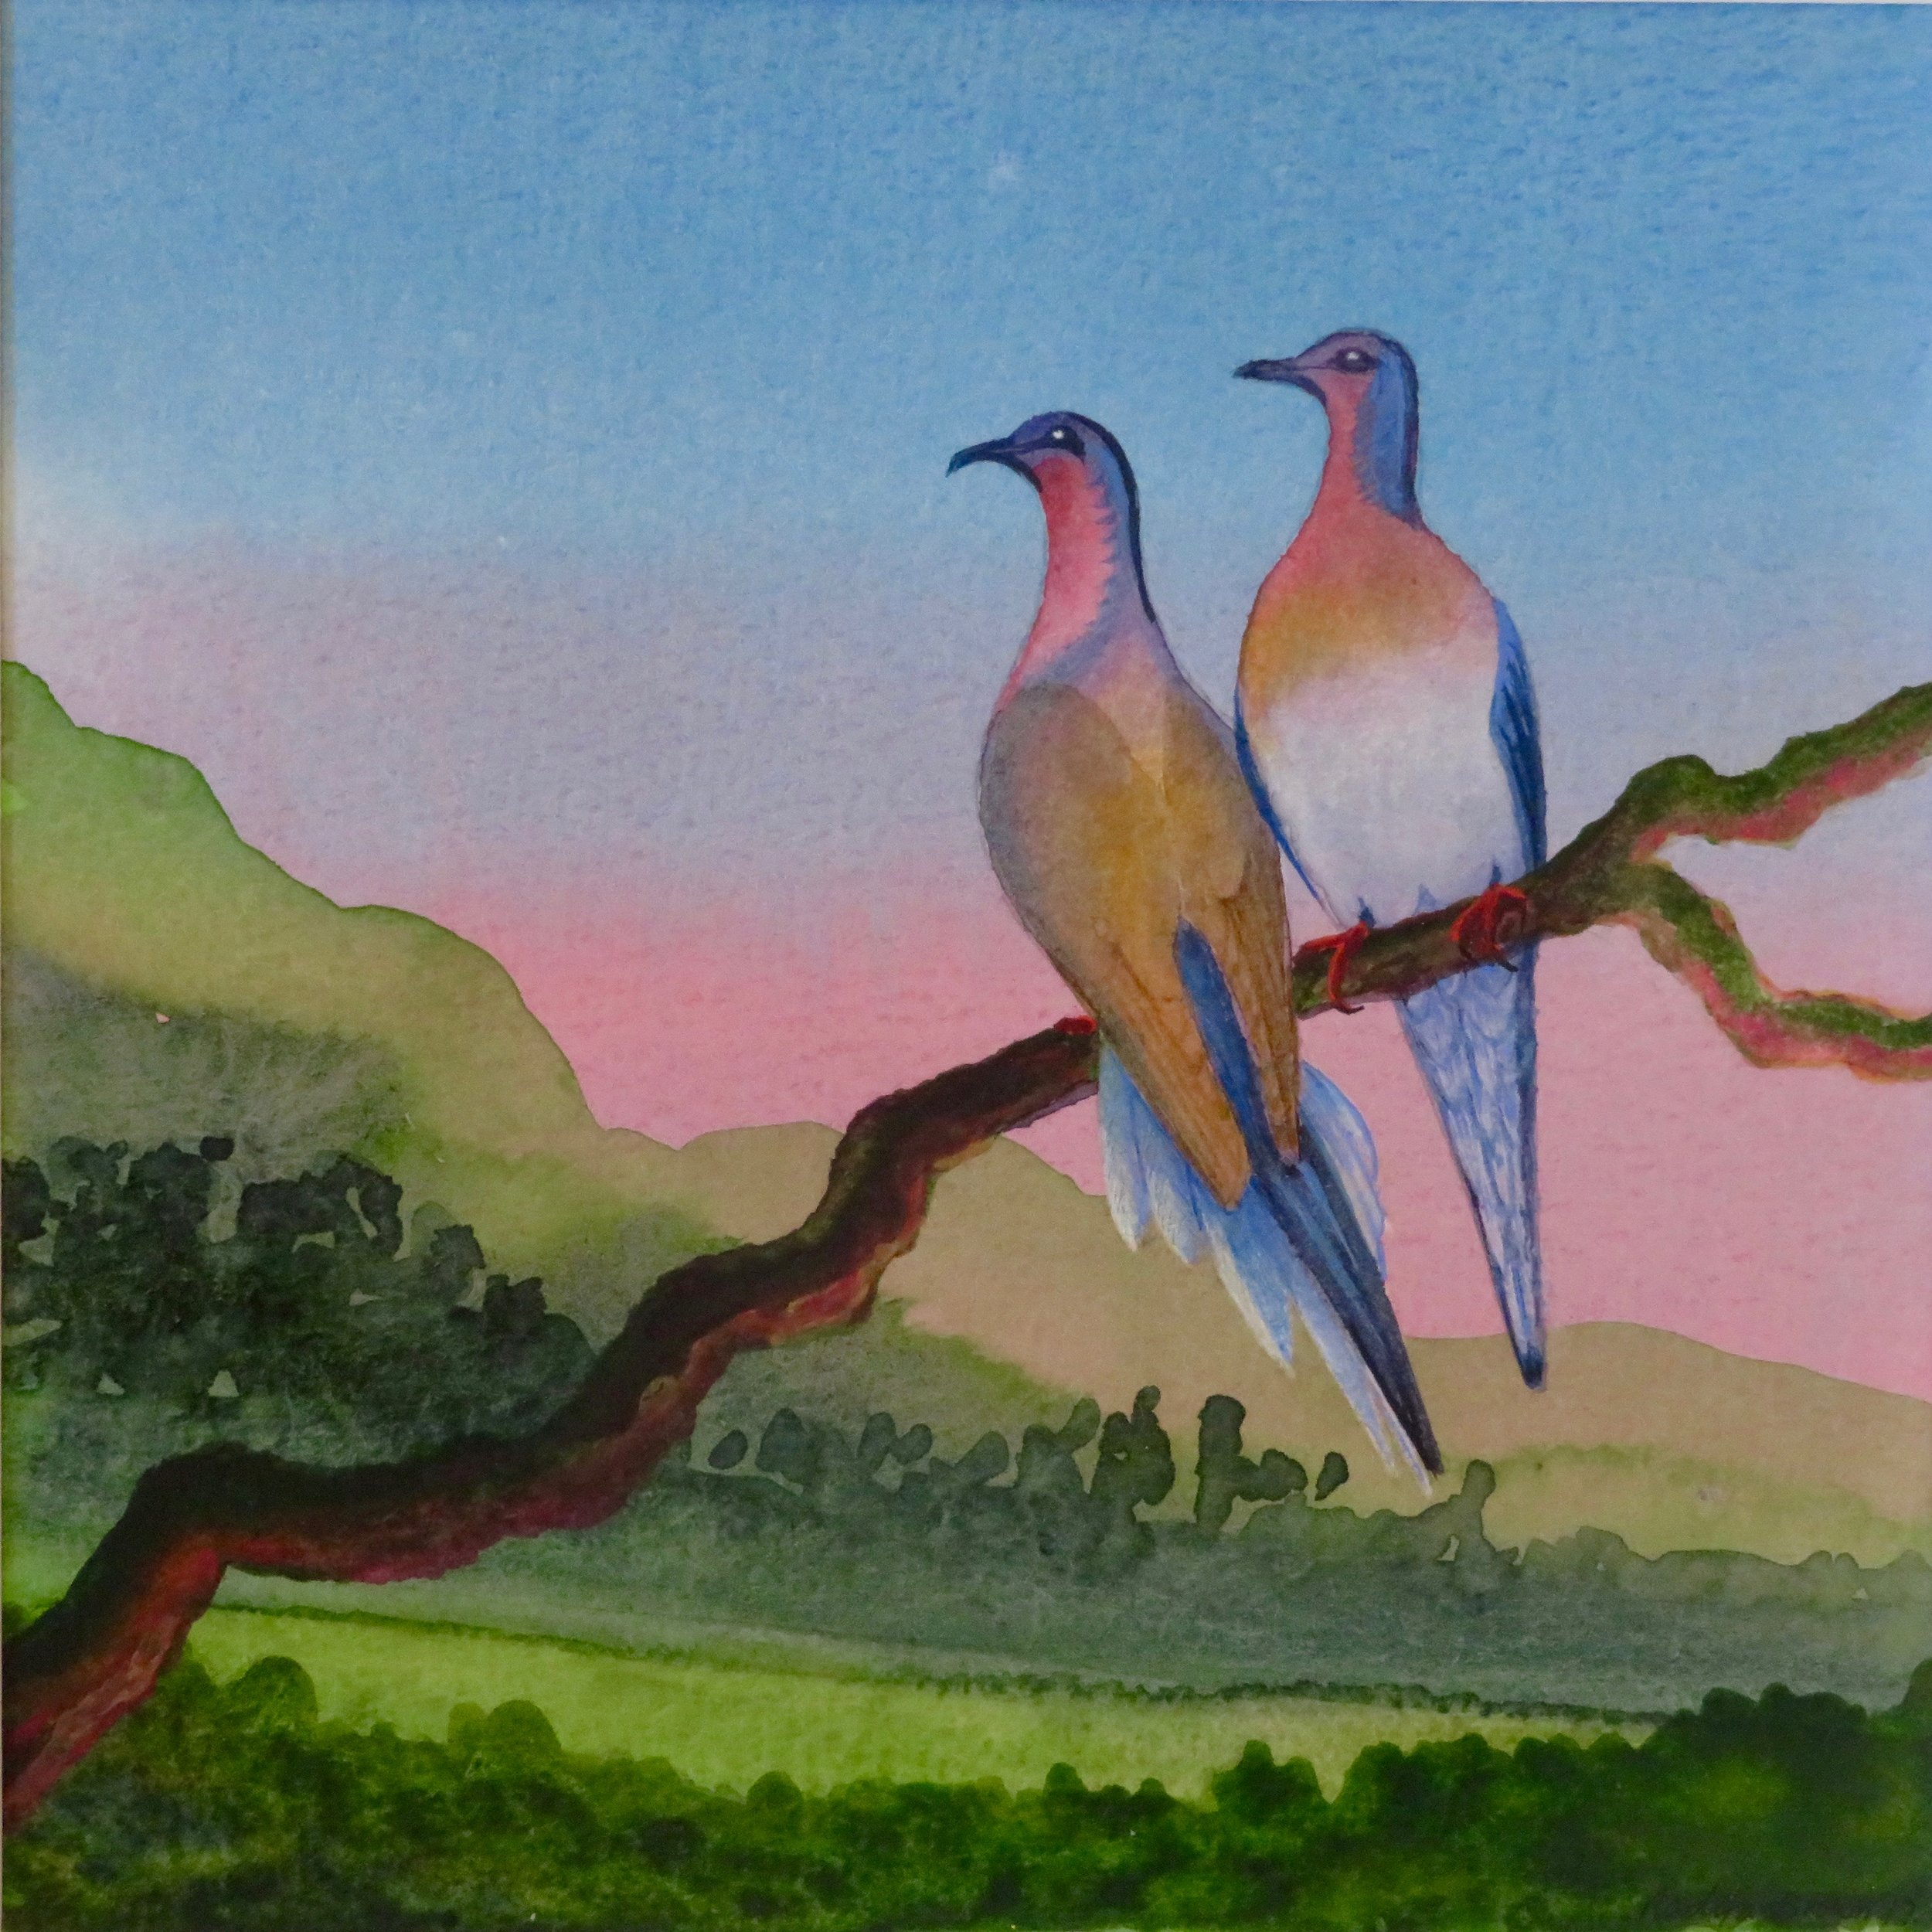 Passenger Pigeons, Extinct